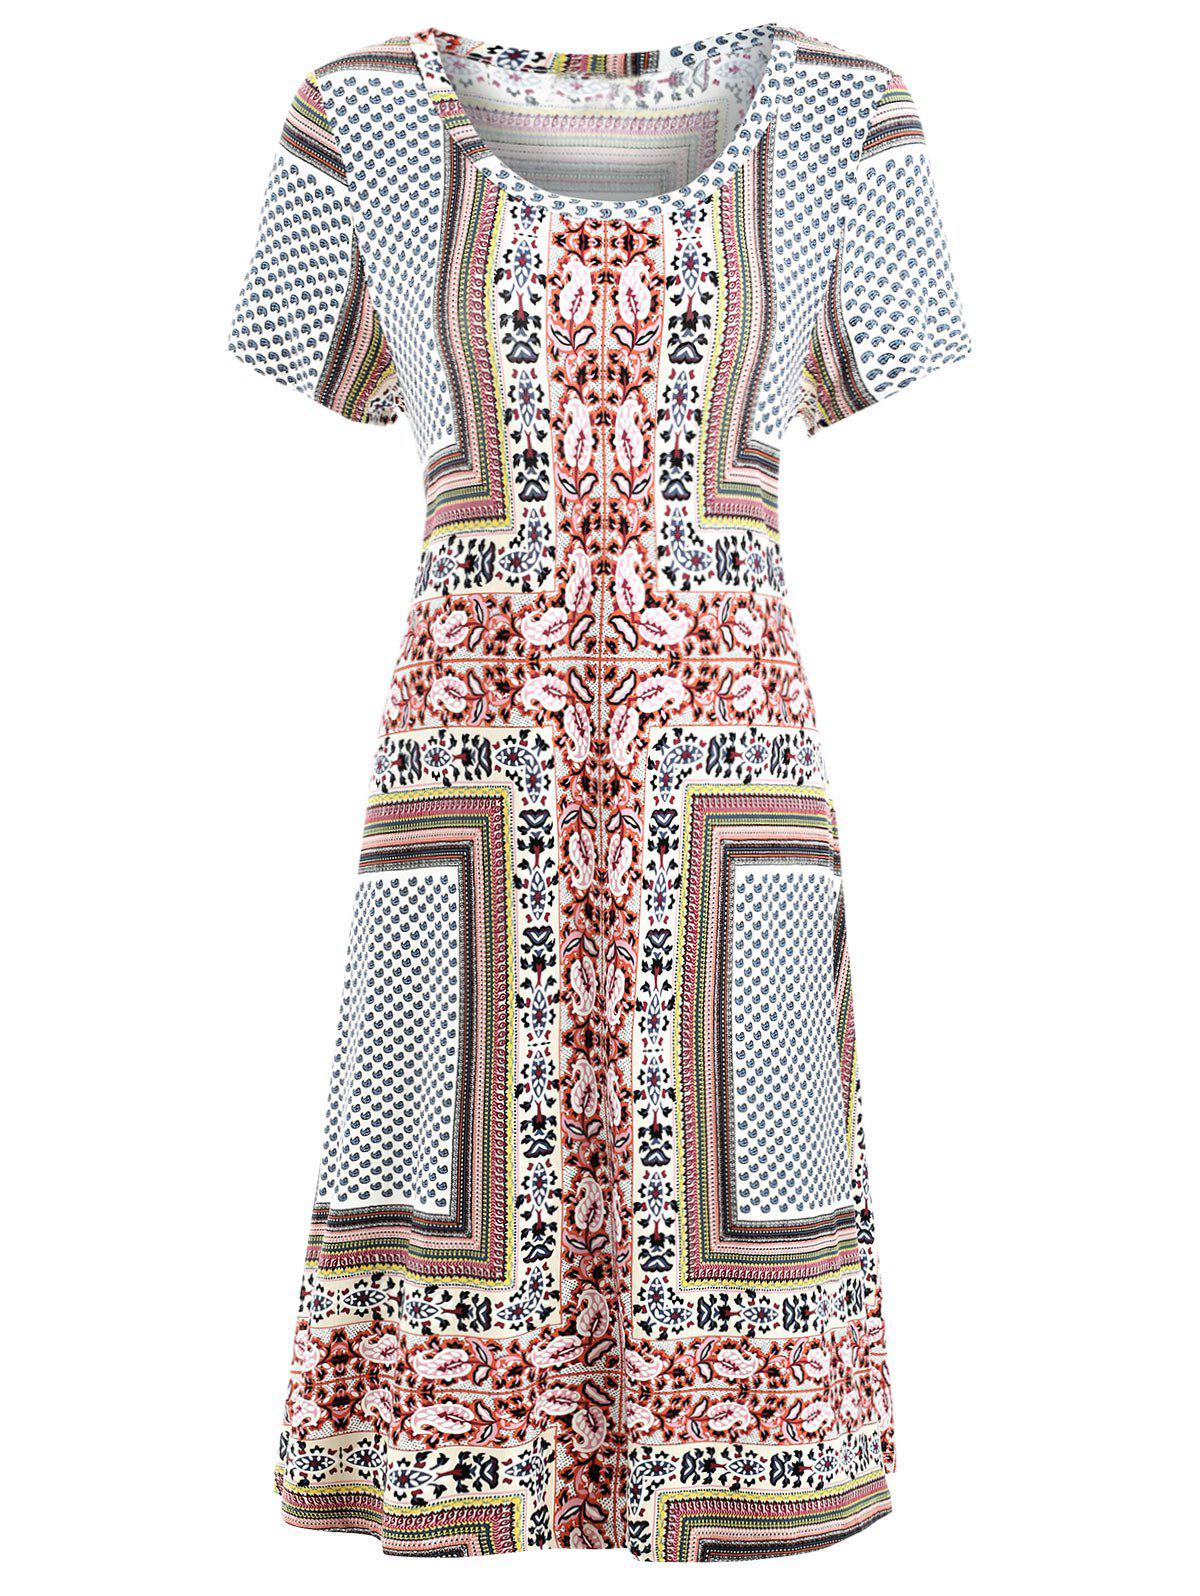 Chic Paisley Print Bohemian Shift Dress